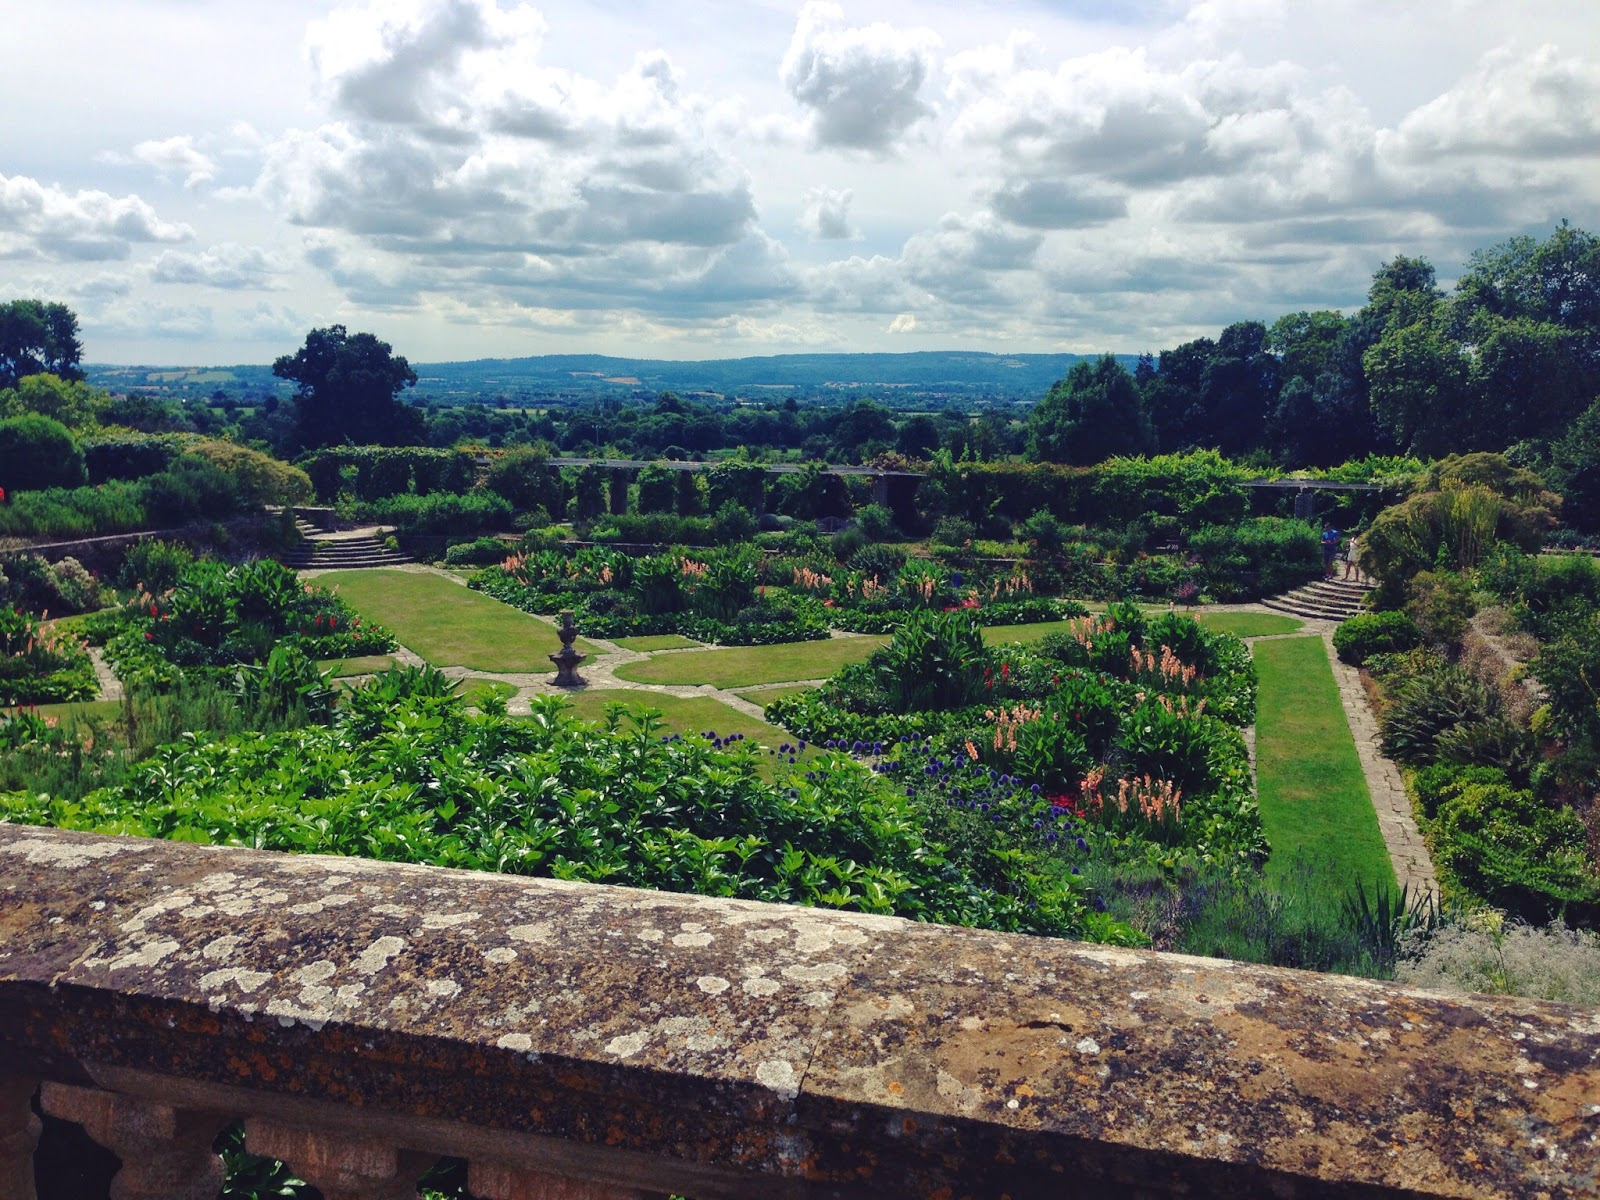 fbloggers, fashion bloggers, hestercombe gardens, somerset, hestercombe, tourist attraction, what to do in somerset, things to do, summer, afternoon tea